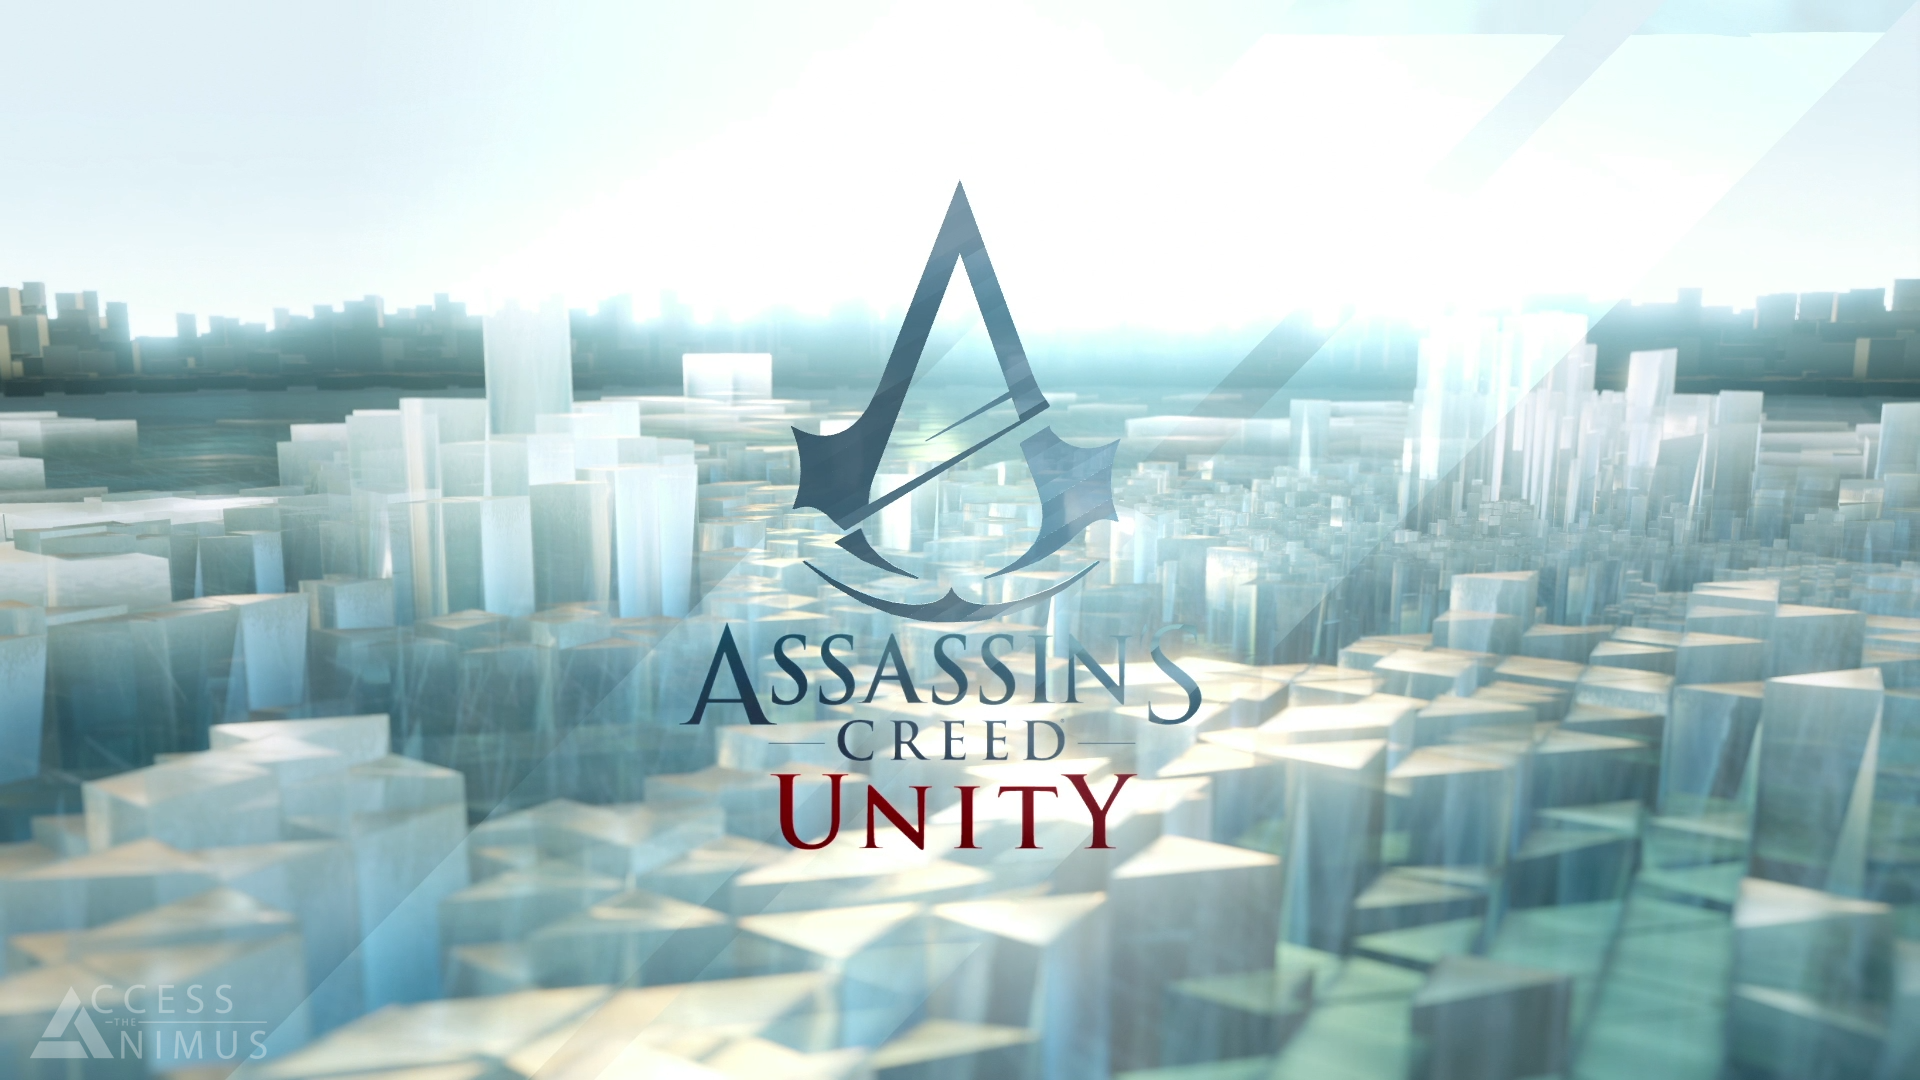 Assassin s creed unity review next available slot assassin s creed - The Screen Of The Animus Interface